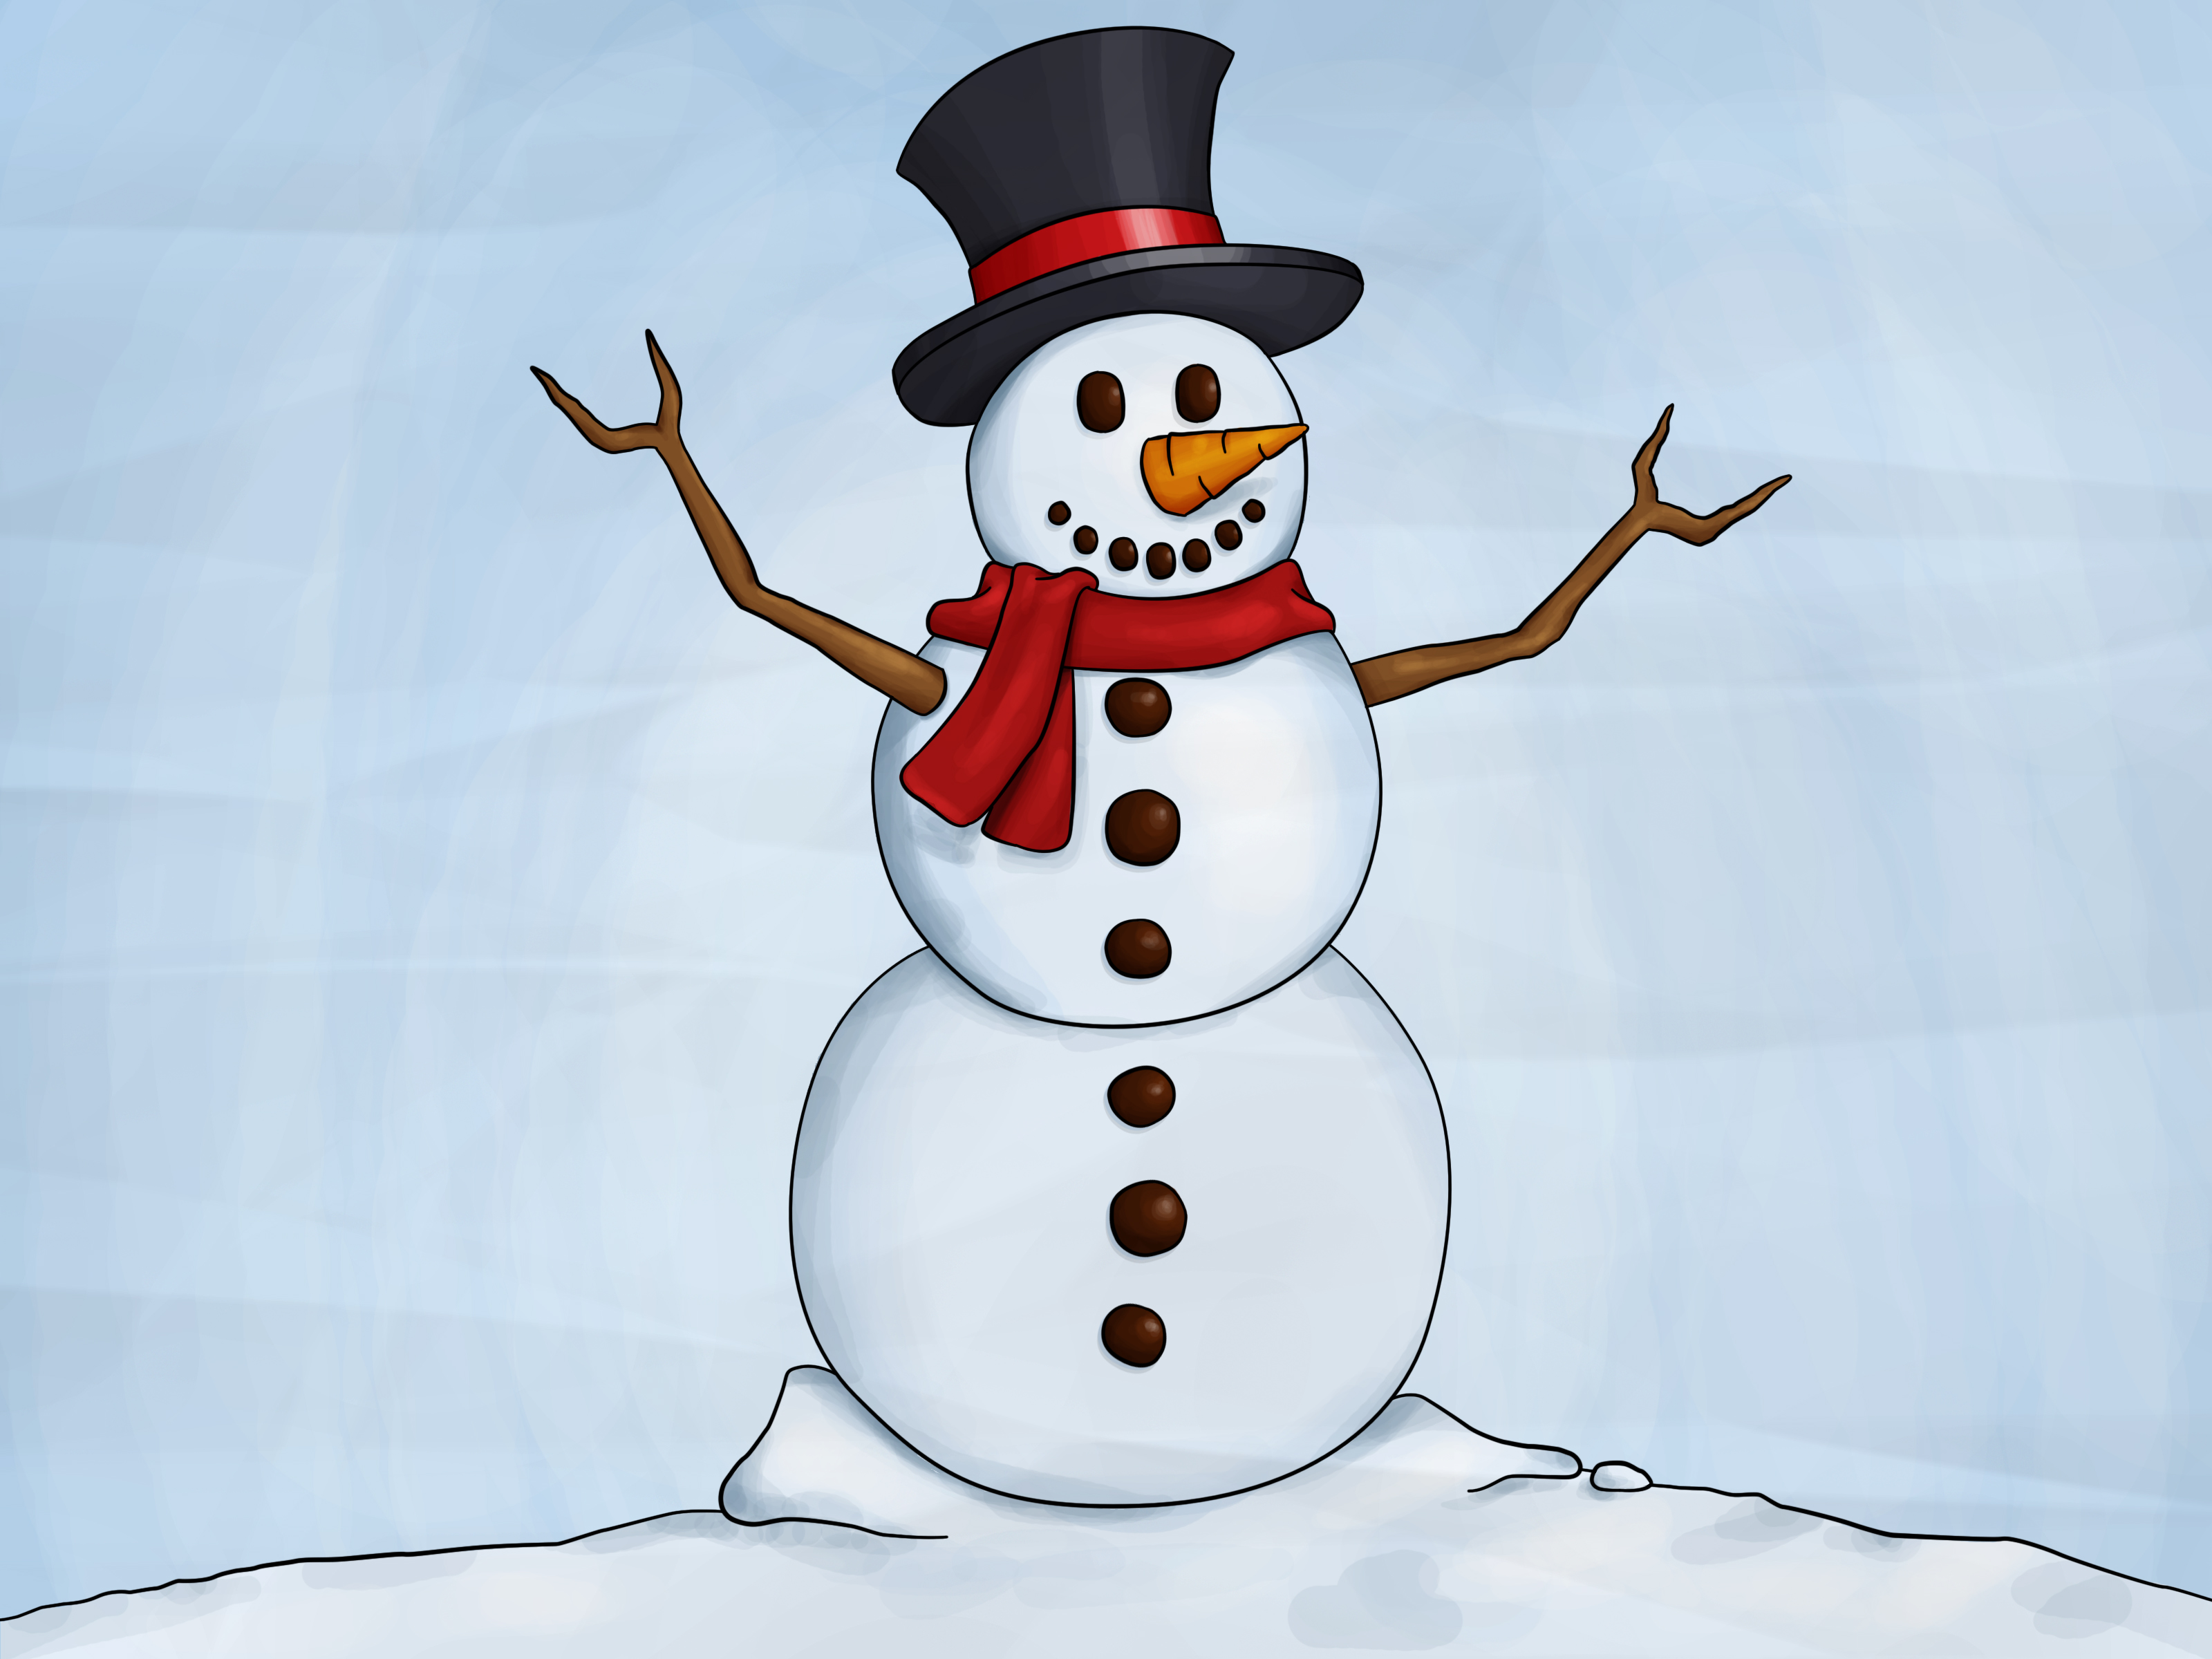 How To Draw A Snowman 8 Steps With Pictures